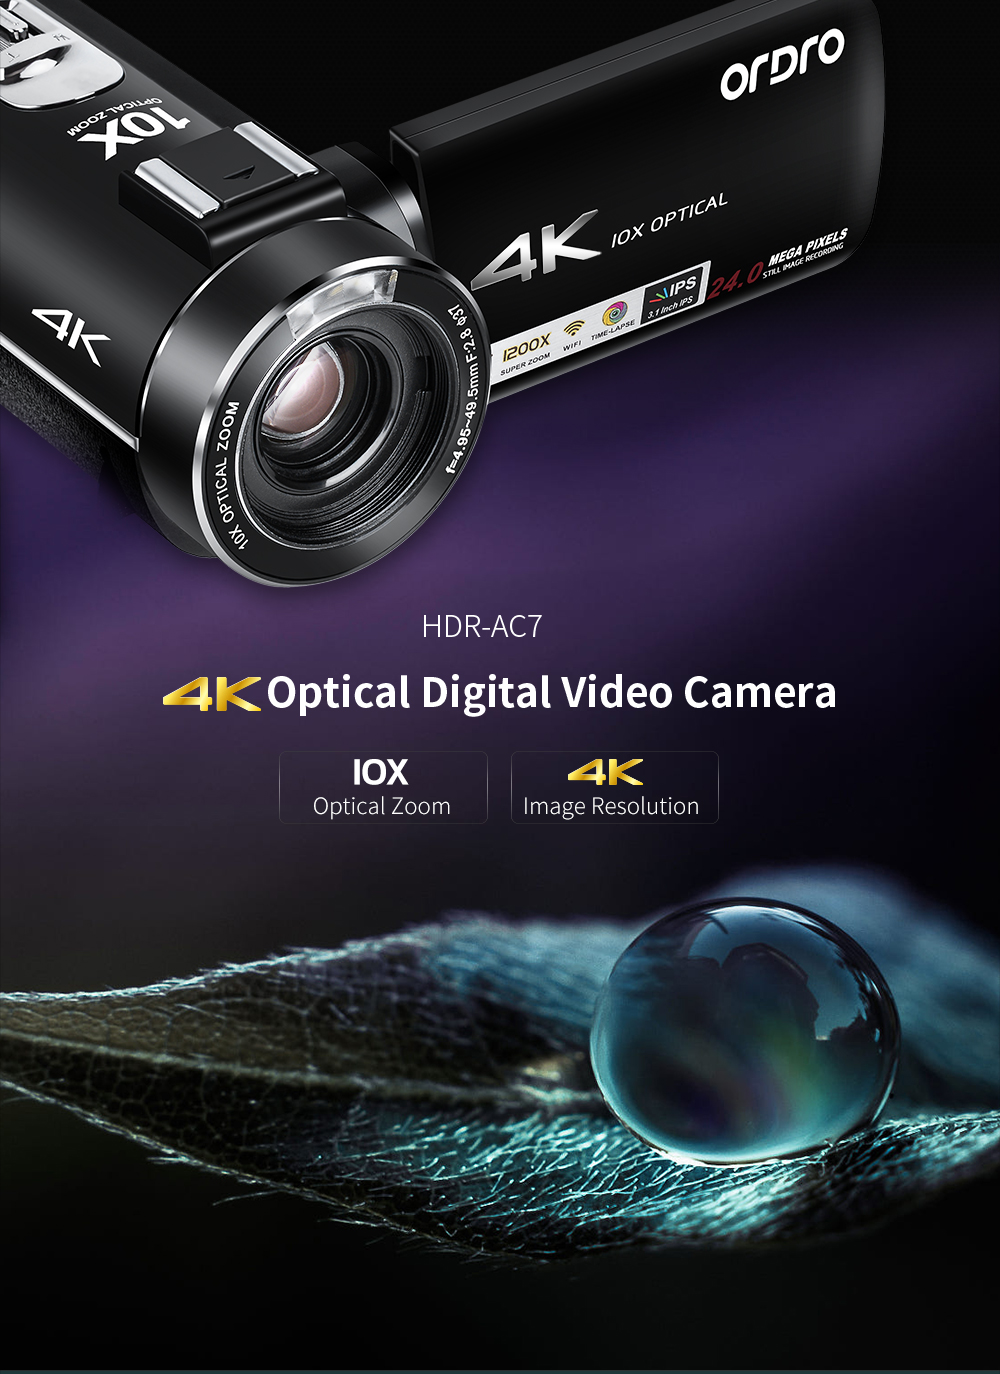 Ordro AC7 4K UHD Digital Video Cameras Camcorders FHD 24MP WiFi IPS Touch screen 100X Digtal Zoom 12X Optical 1200x Super Zoom DV Mini Camcorders (1)